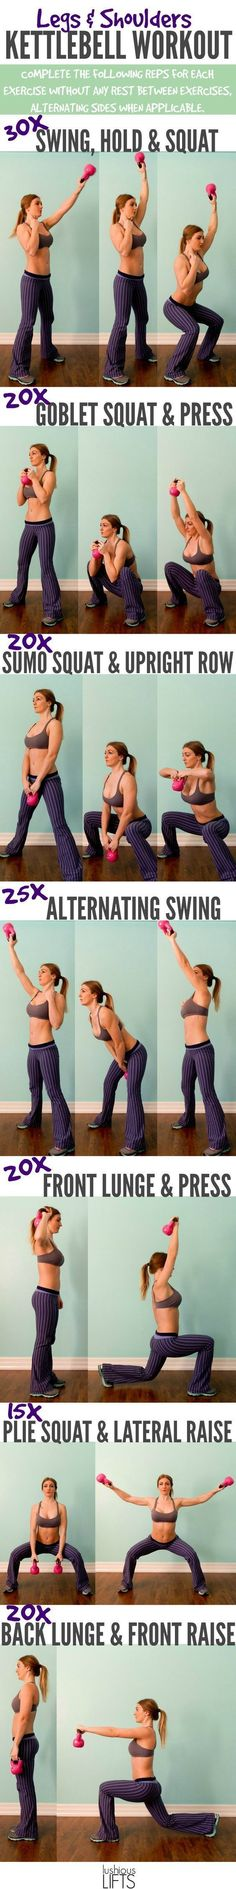 Legs and Shoulders Kettlebell Workout | Posted By: AdvancedWeightLossTips.com #workoutmotivationgirlhealth